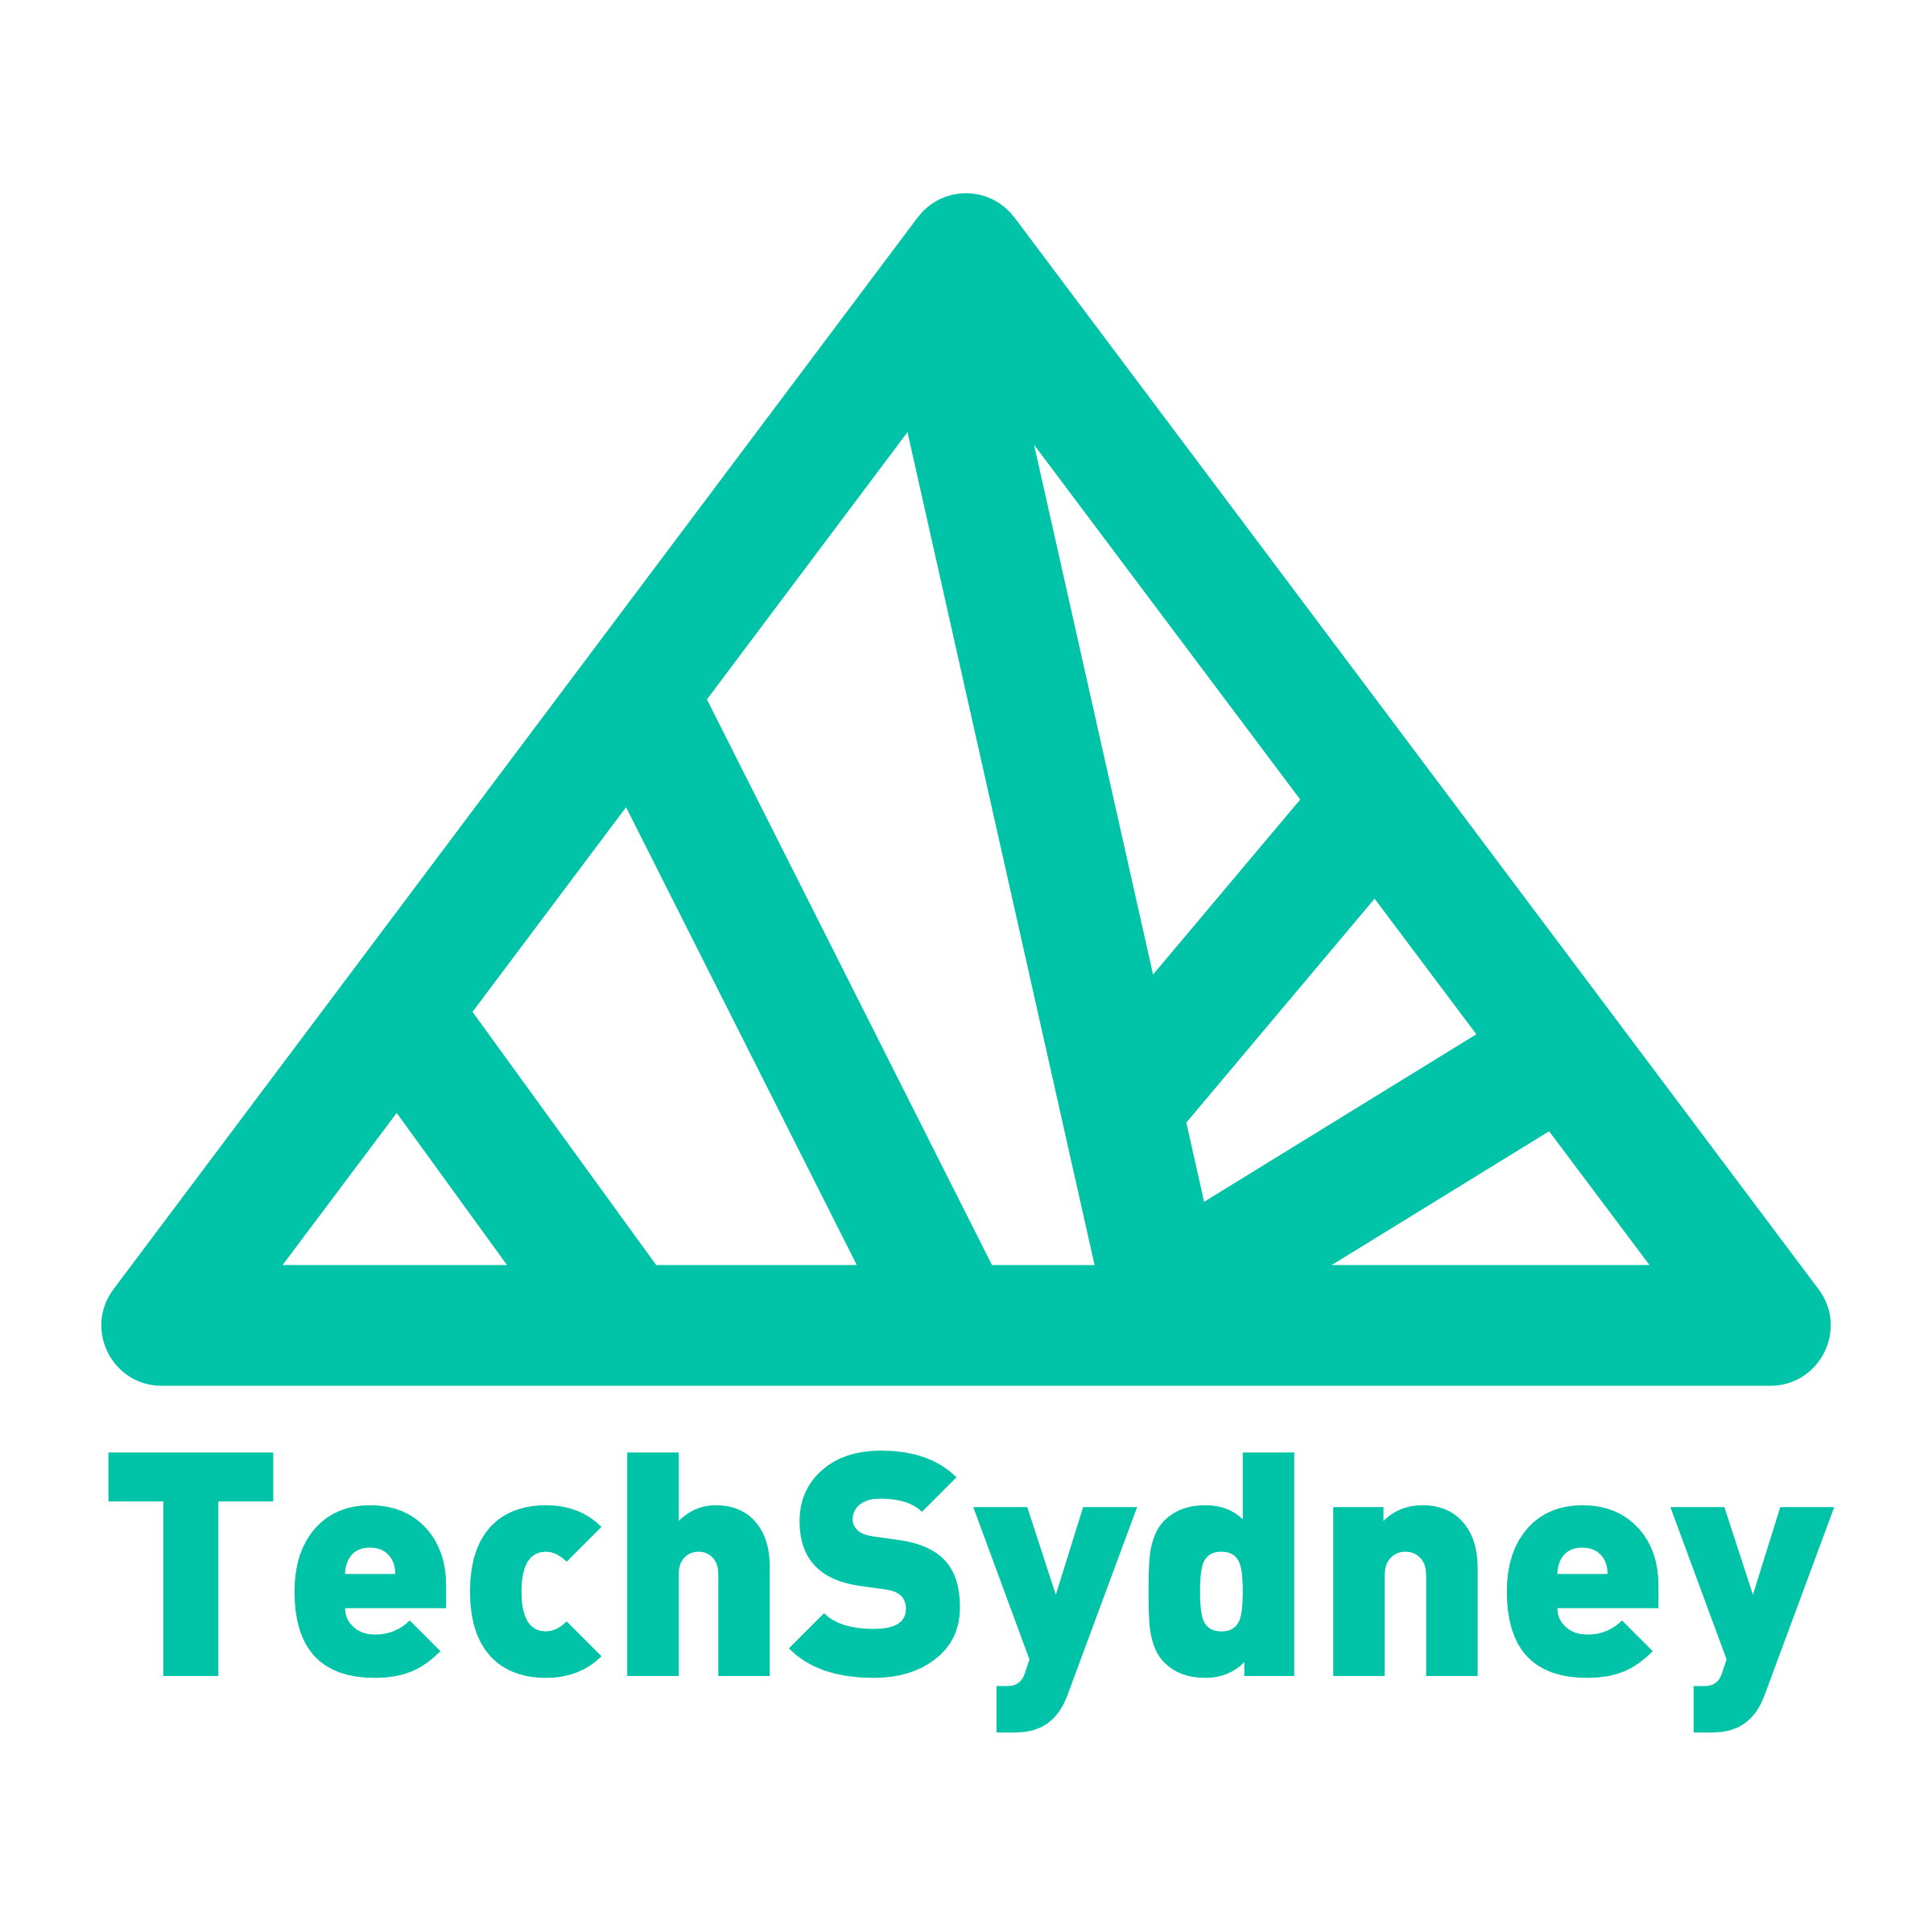 TechSydney